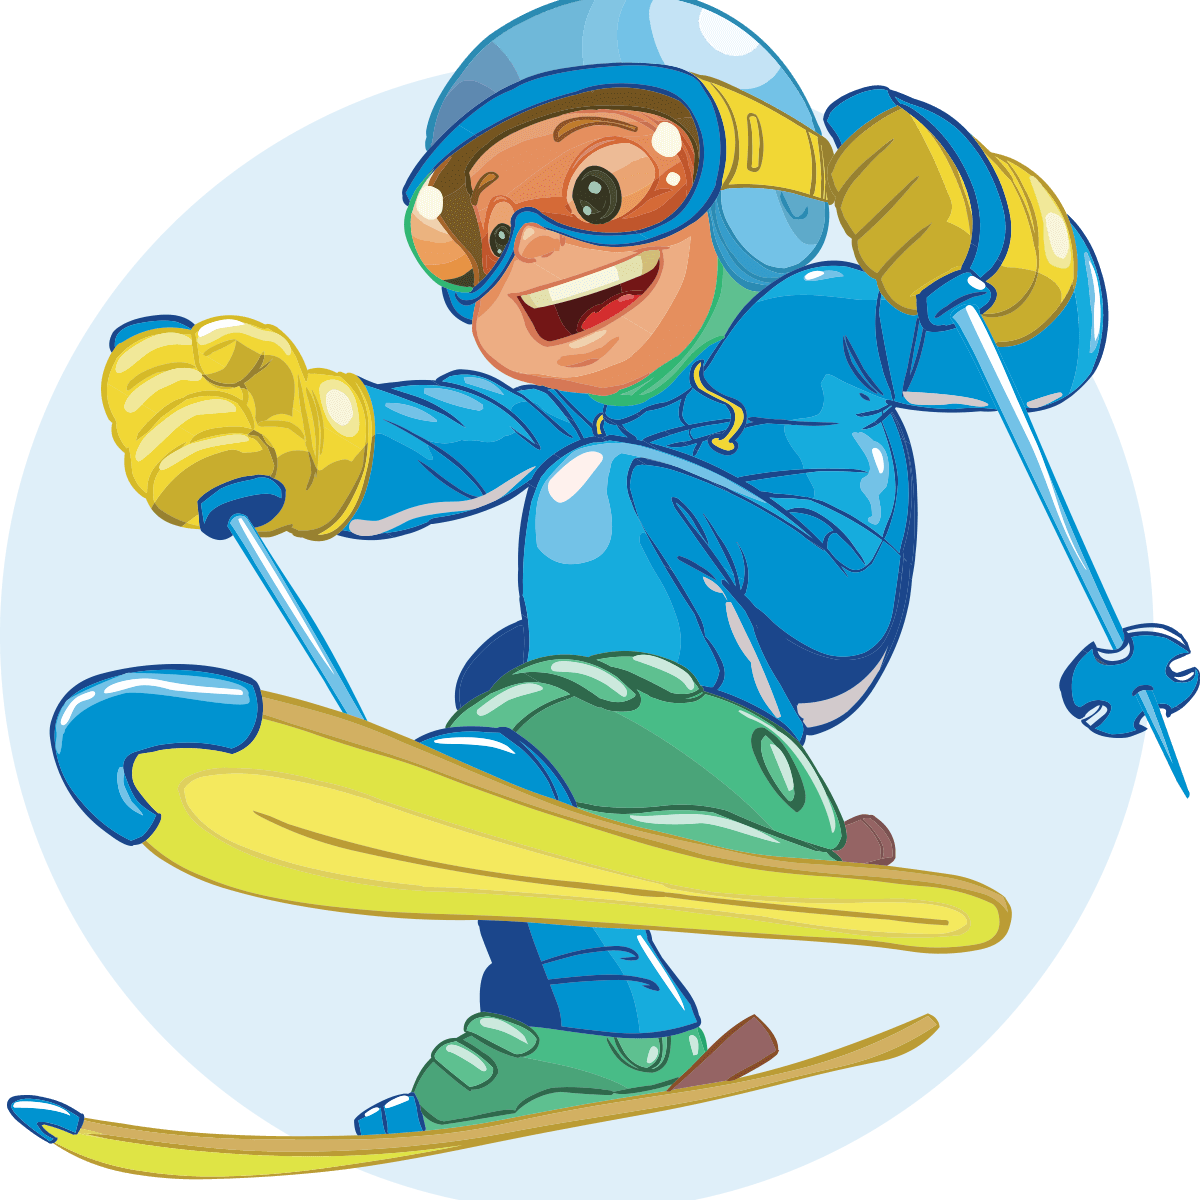 Finger lakes mountains discount. Skis clipart ski hill